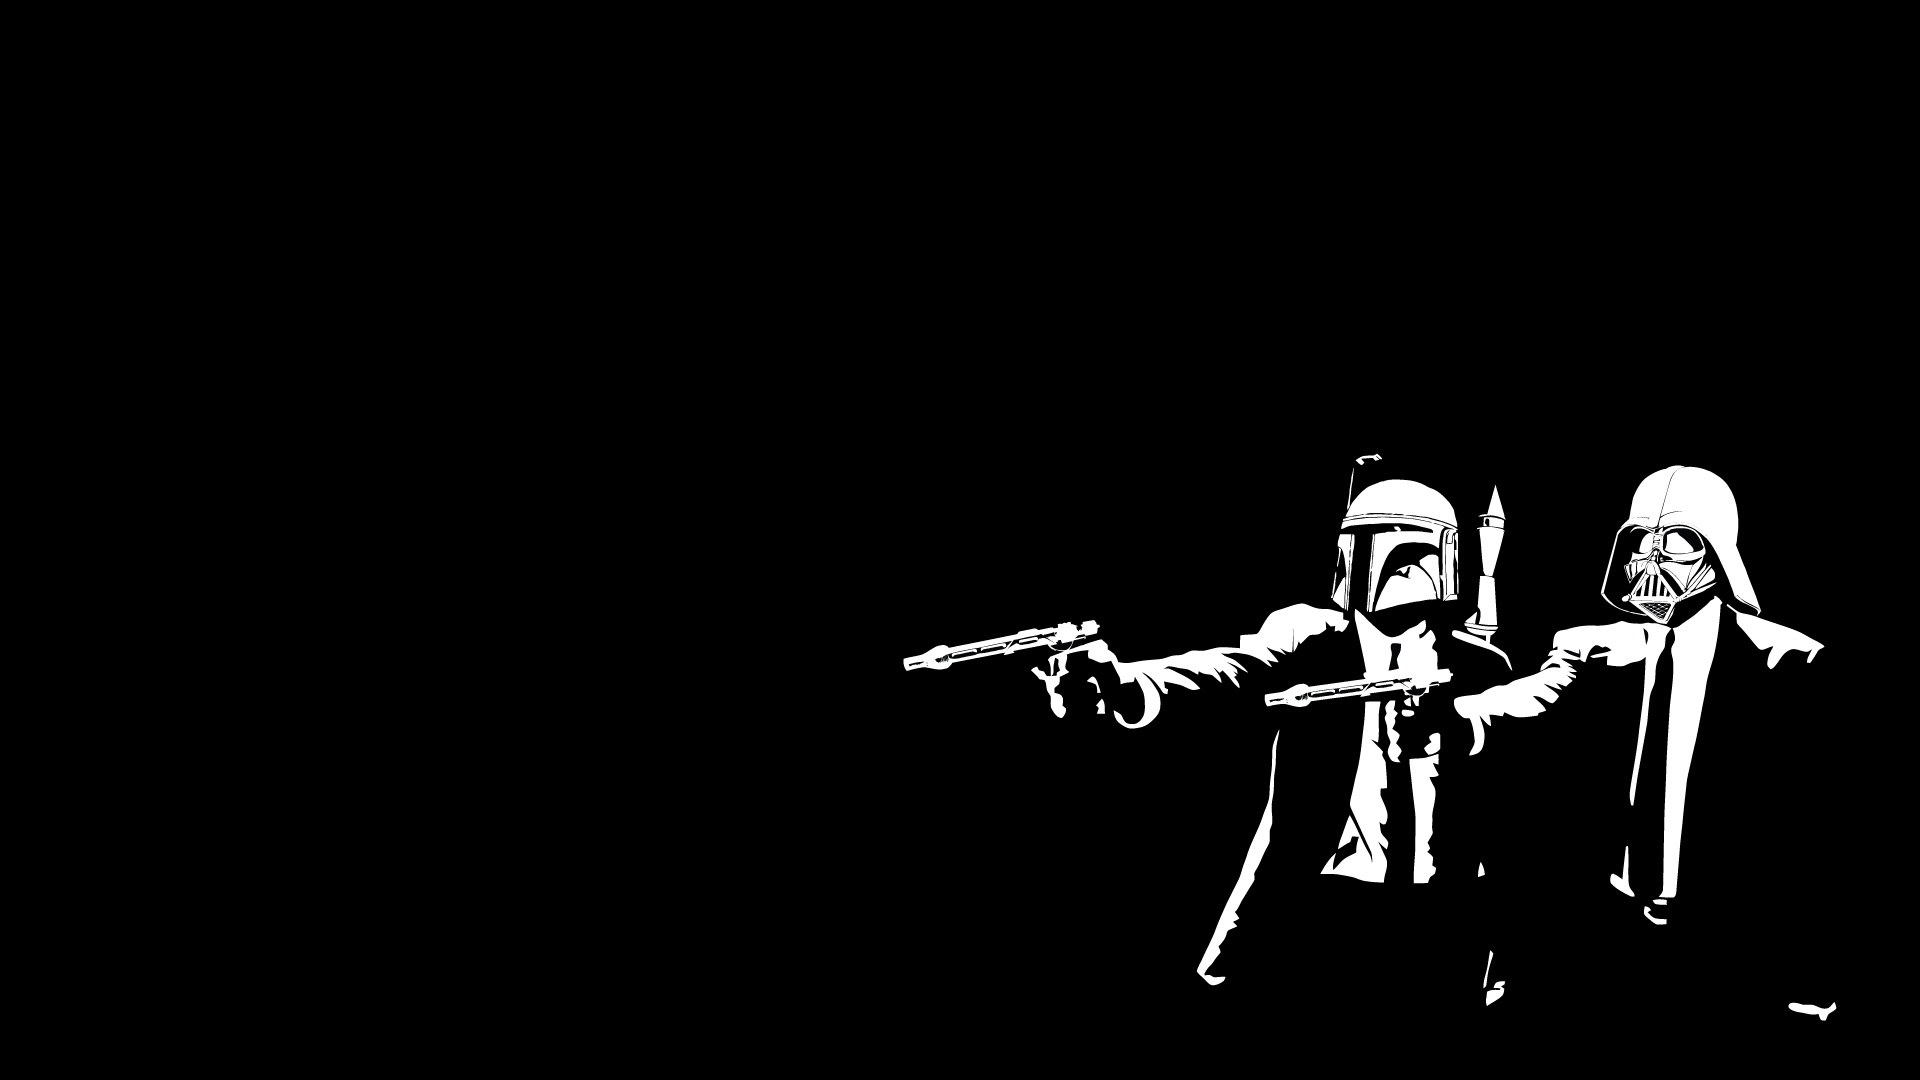 Star Wars Wallpaper 022